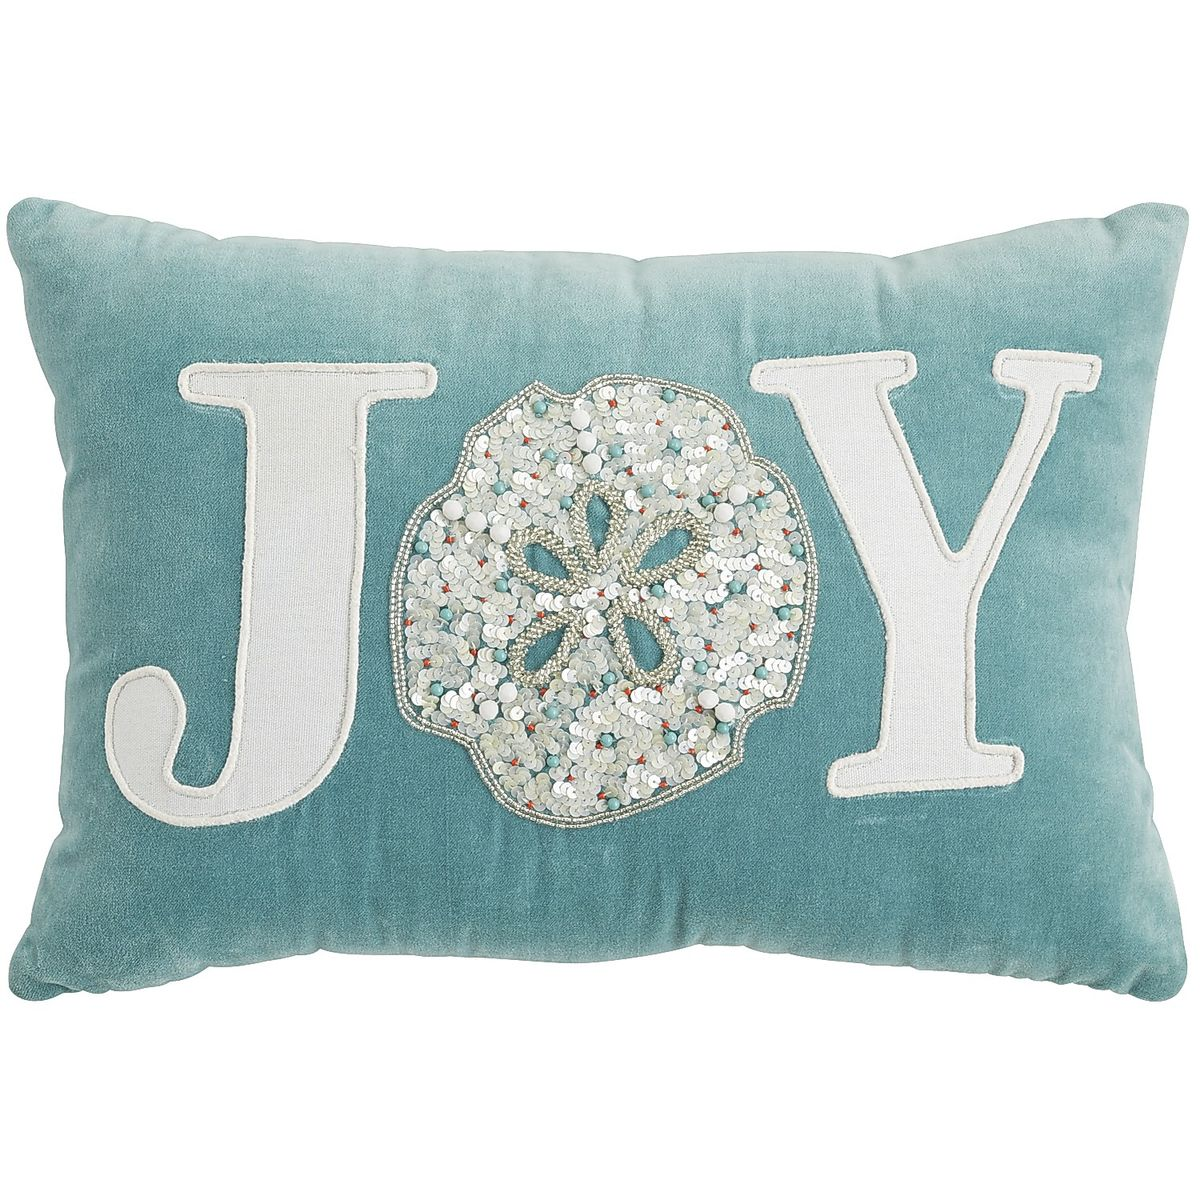 sea blue covers pin pillow beach white pillows shells outdoor navy style cushions s hampton and coastal